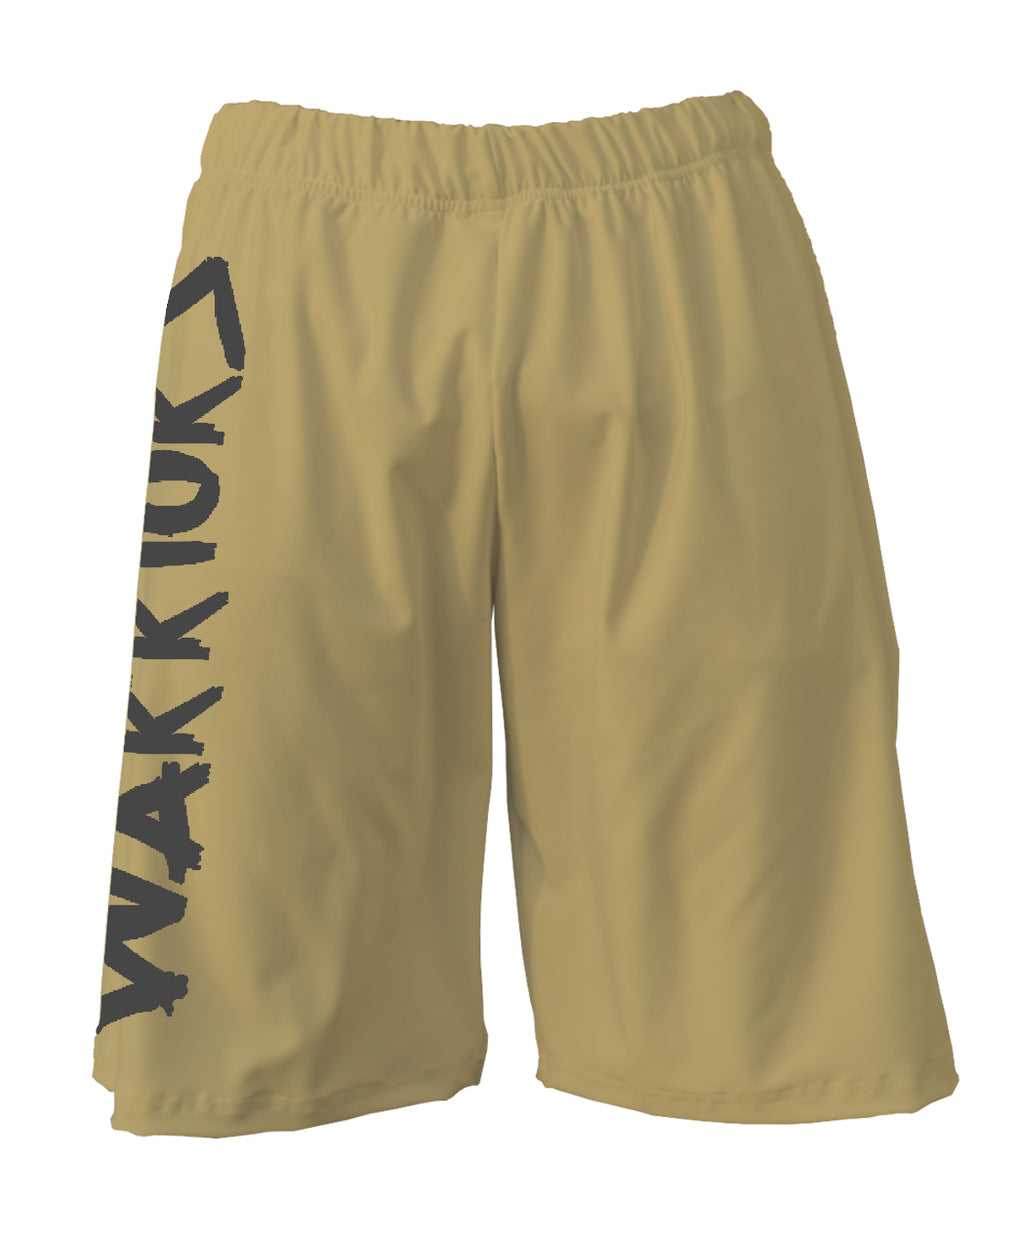 MG Warren Central Ath Fit Shorts